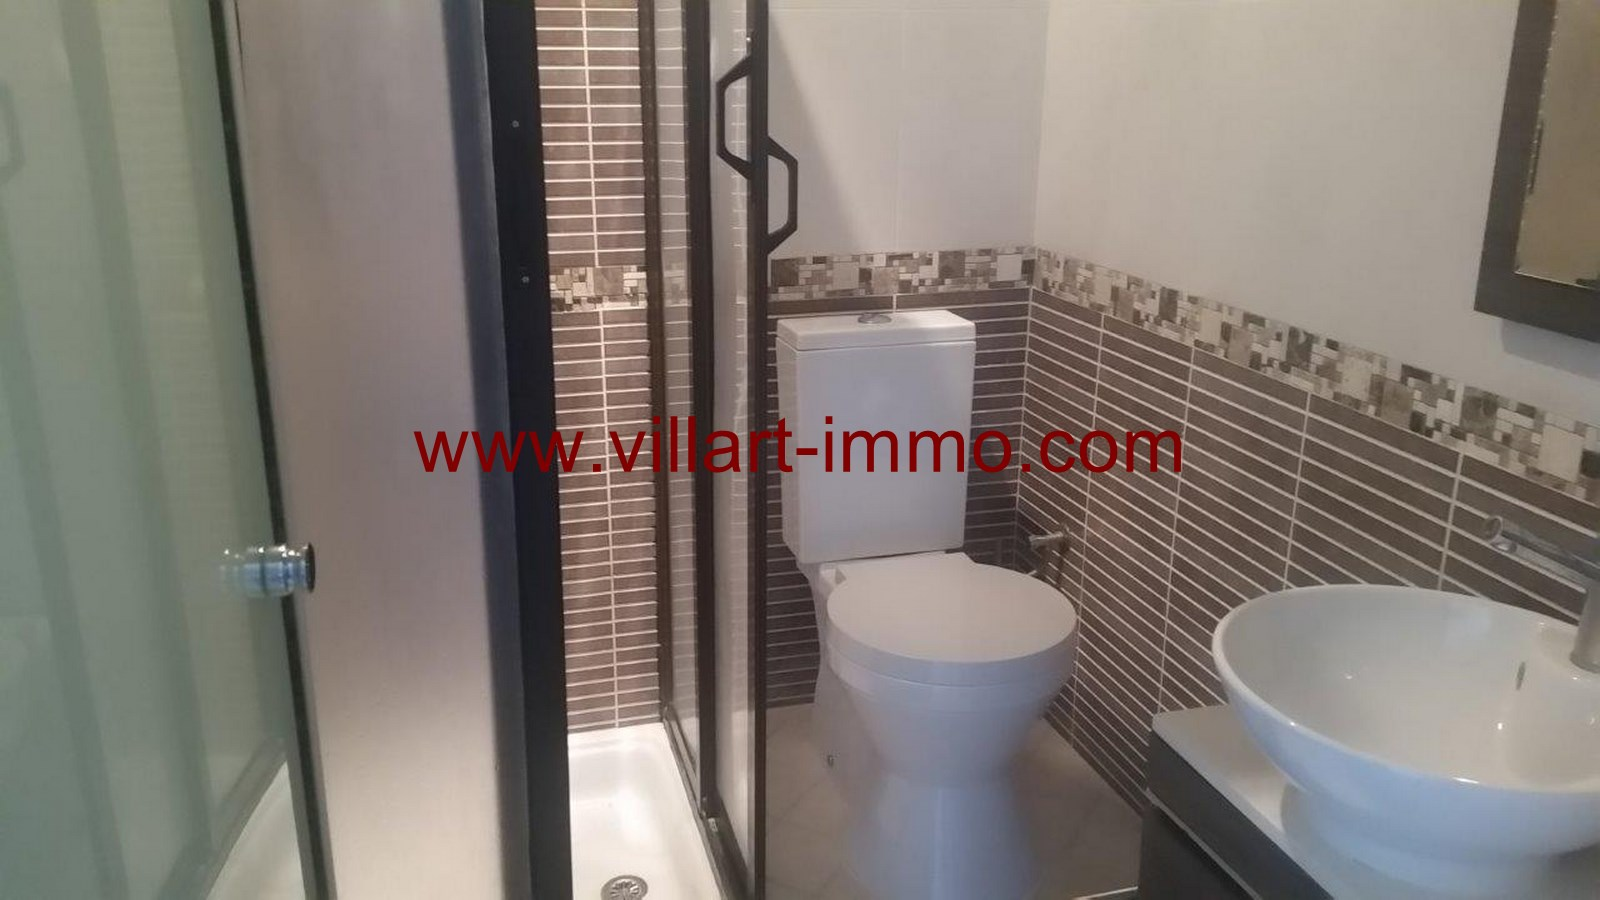 19-To Let-Villa-Furnished-Tangier-Bathroom 4-LV986-Villart Immo